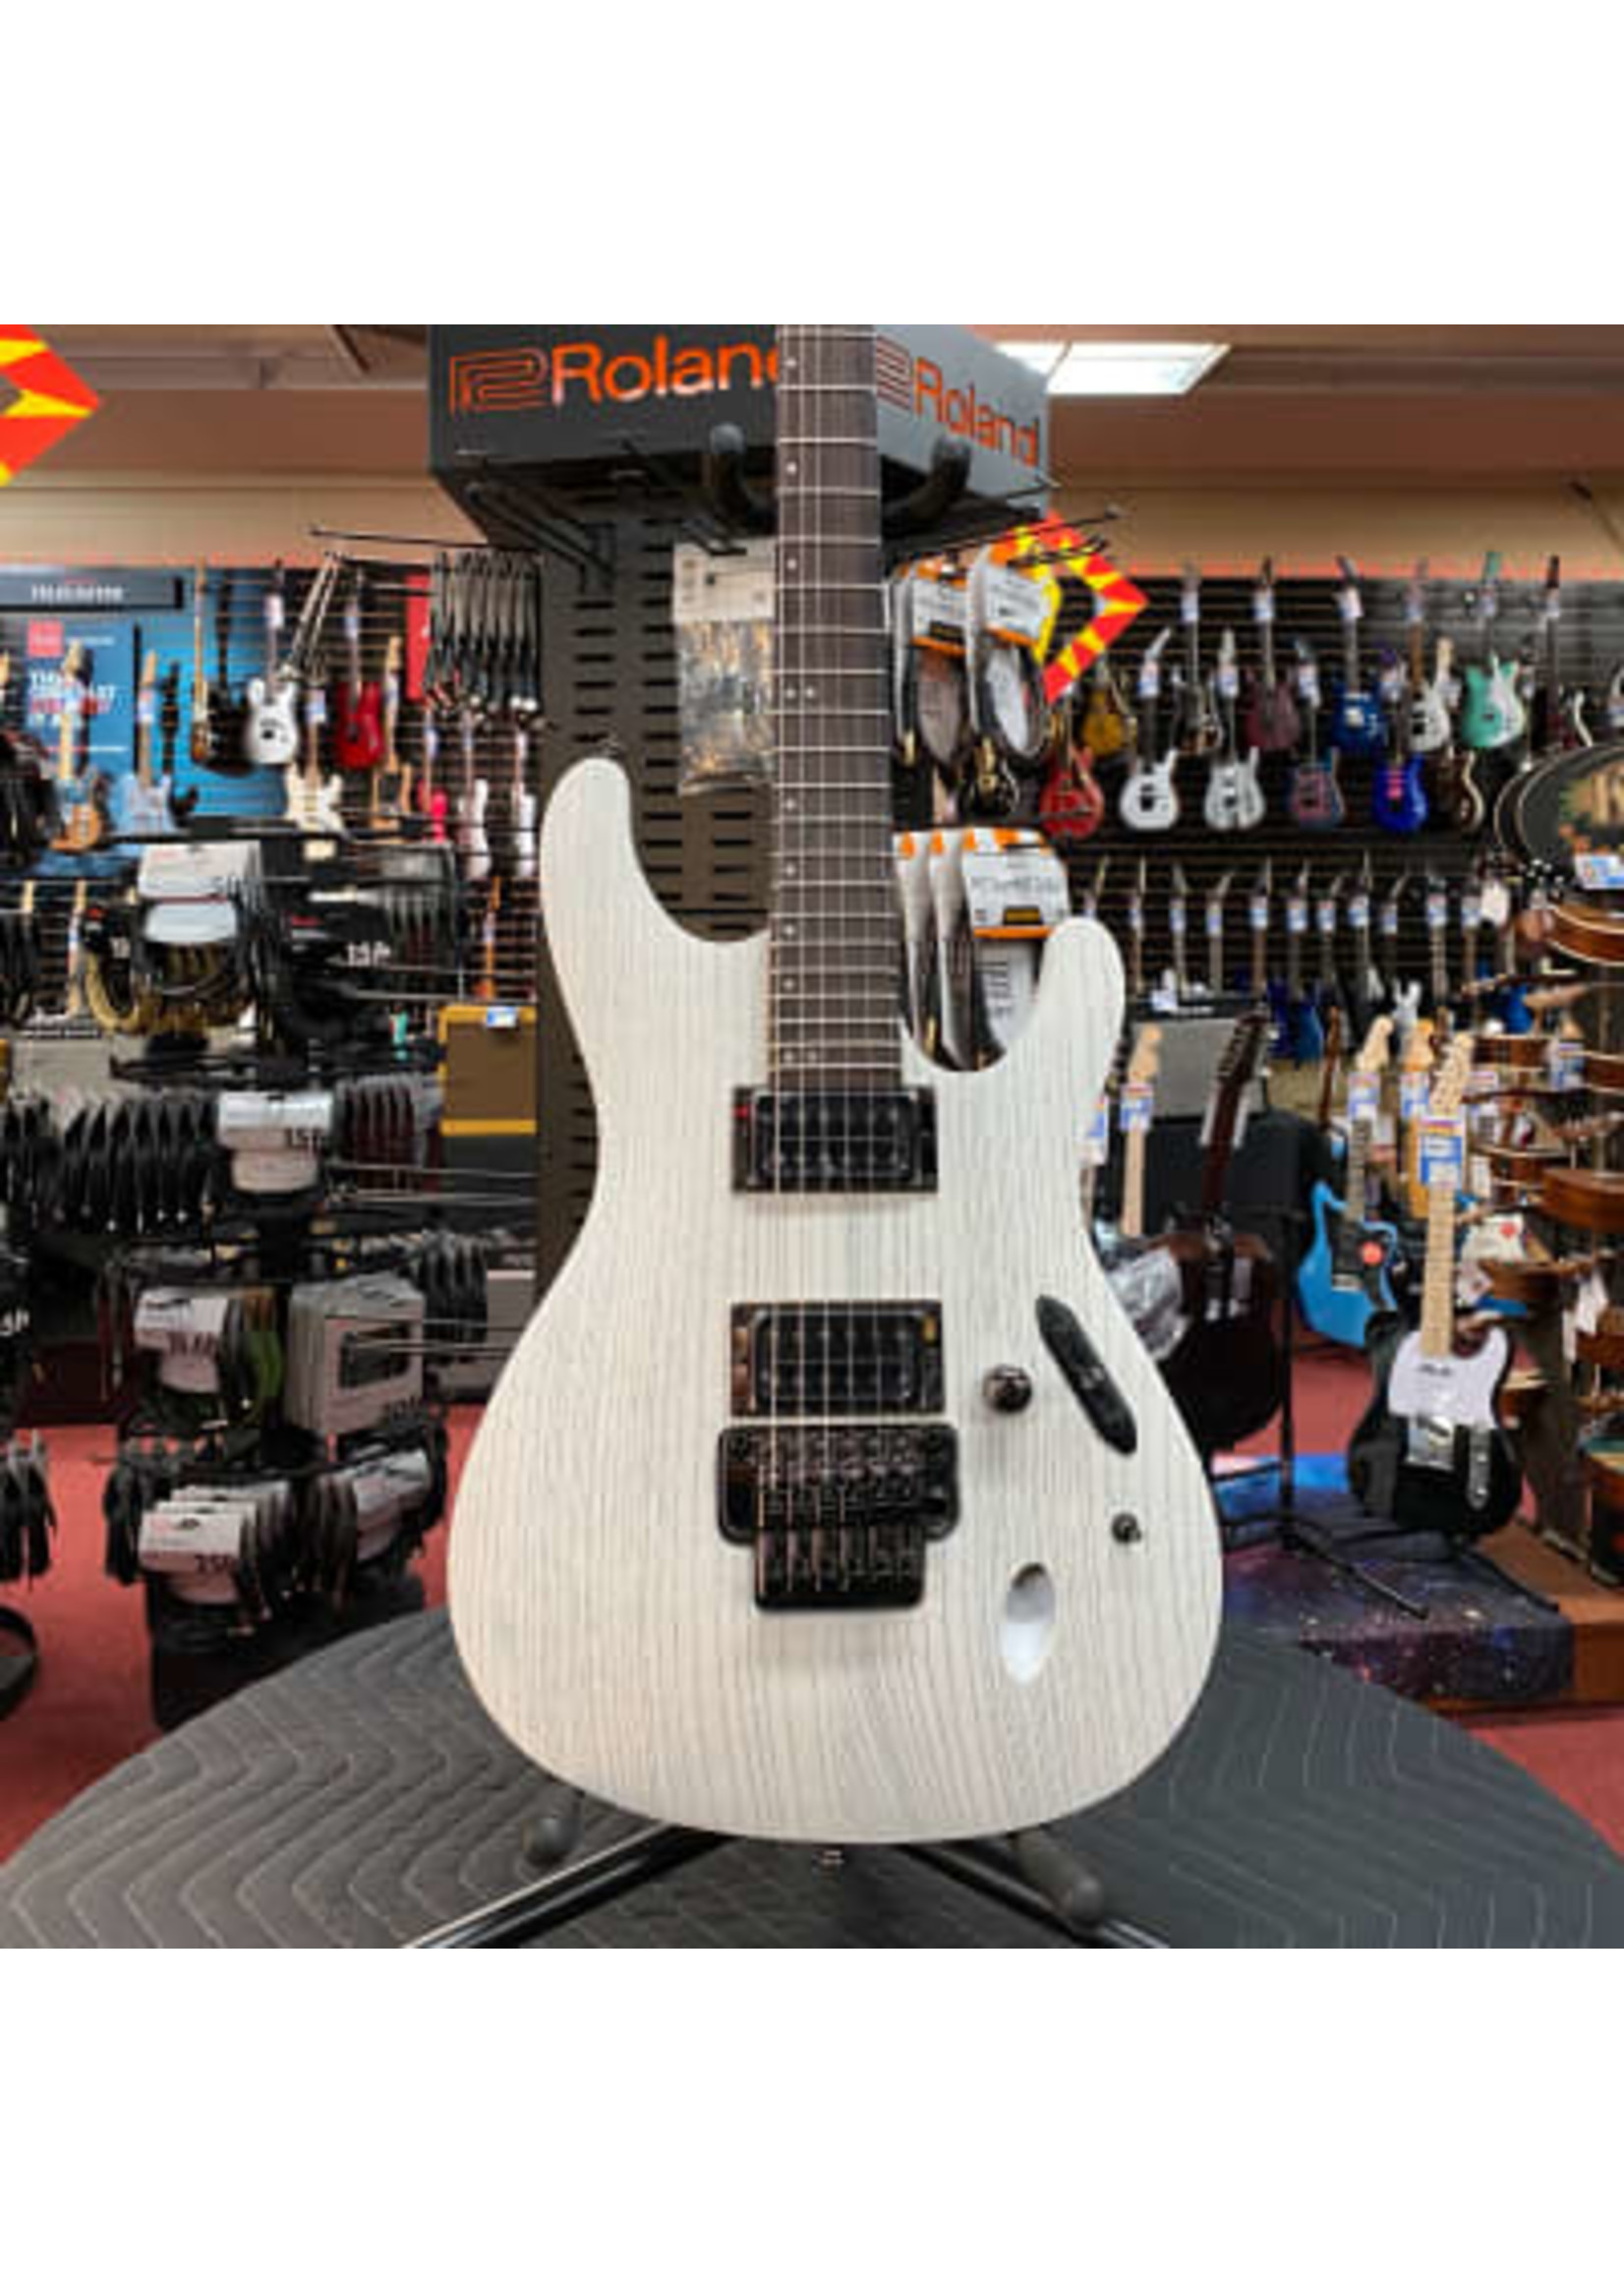 Ibanez Ibanez Paul Waggoner Signature PWM20 Electric Guitar - White Stain